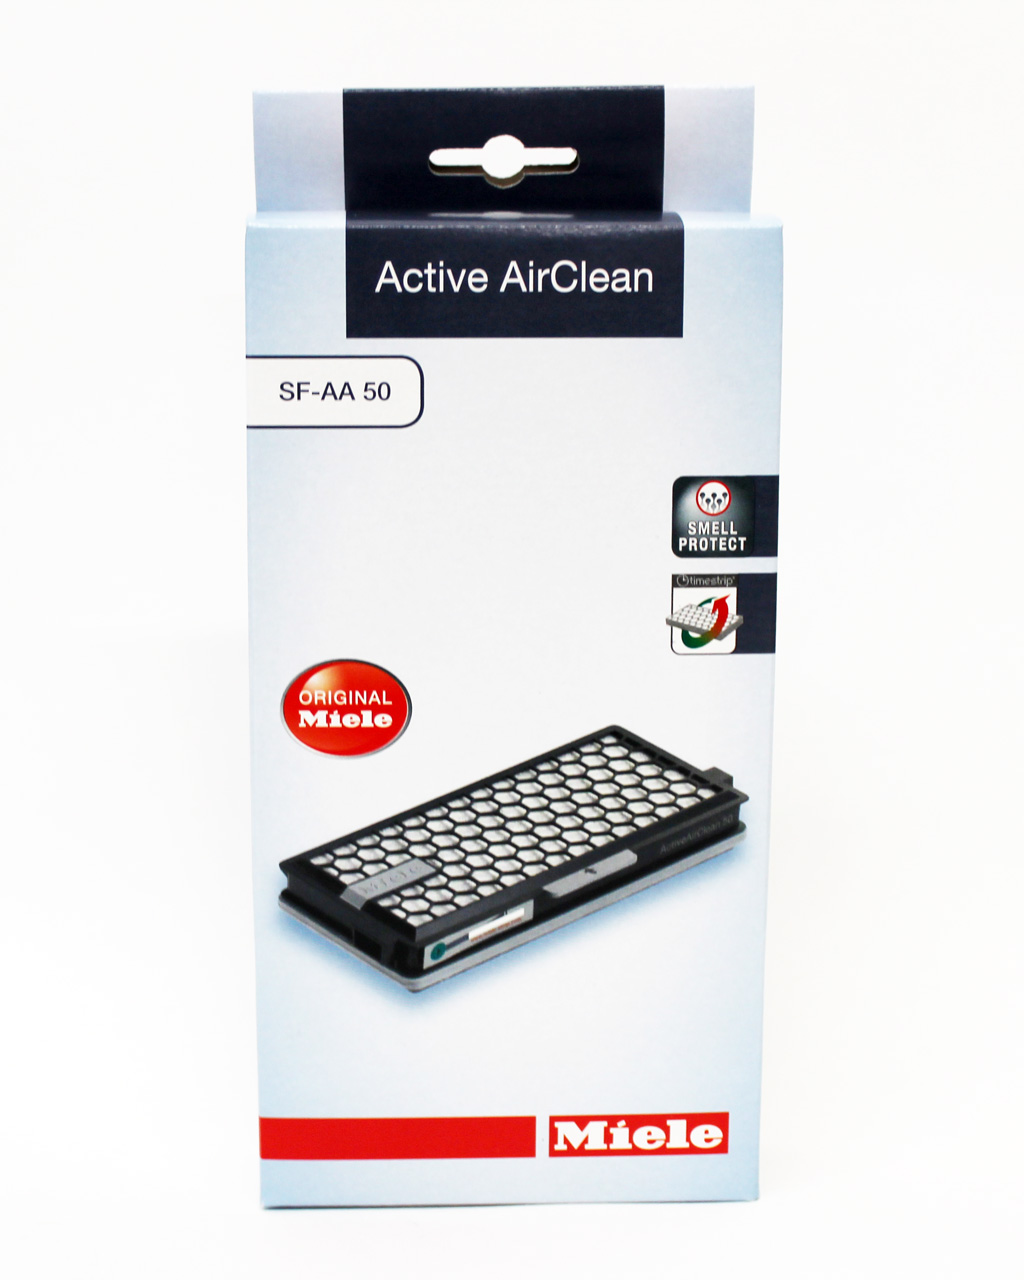 Description of MIELE ACTIVE AIR CLEAN FILTER SFAAC50, SF-AA50